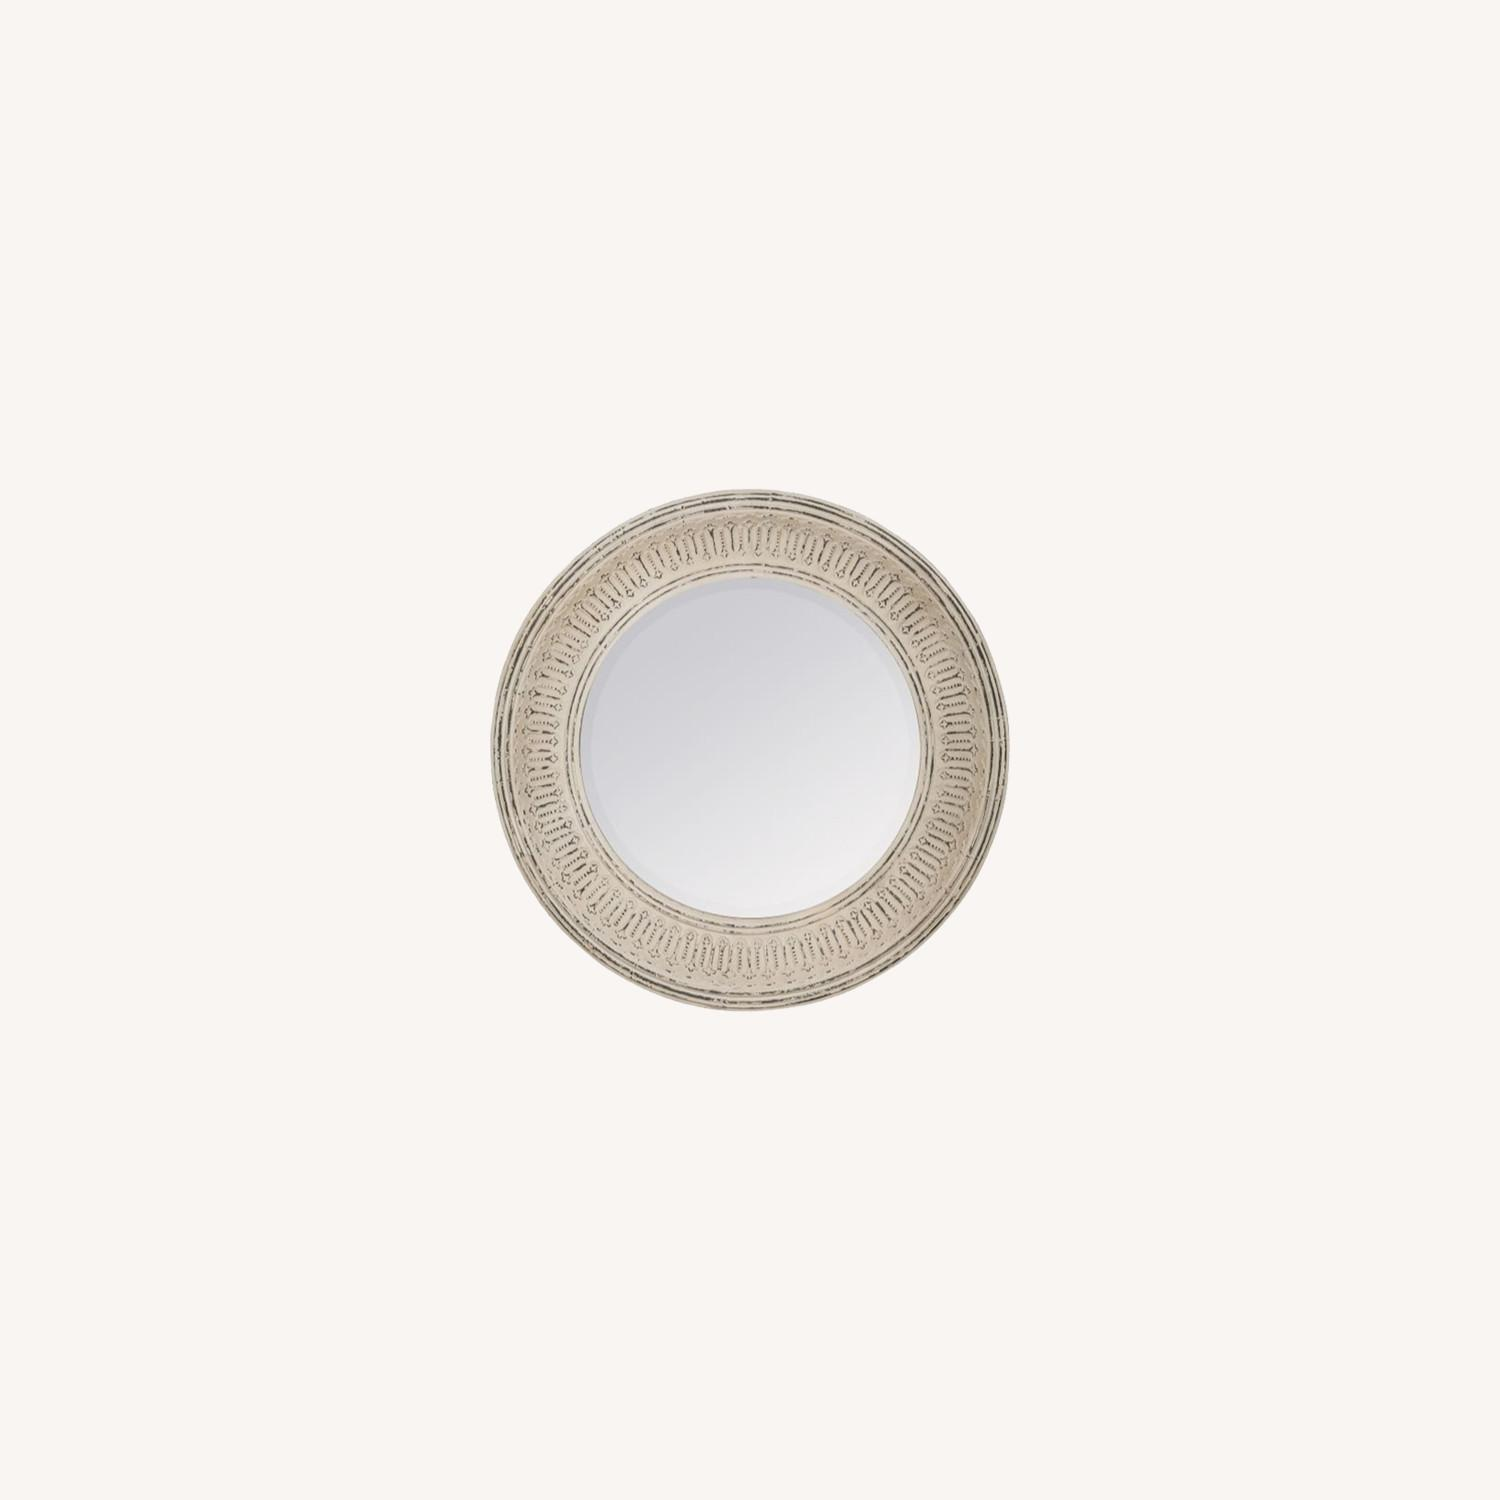 Pottery Barn Winslet Mirror Large Round White - image-0